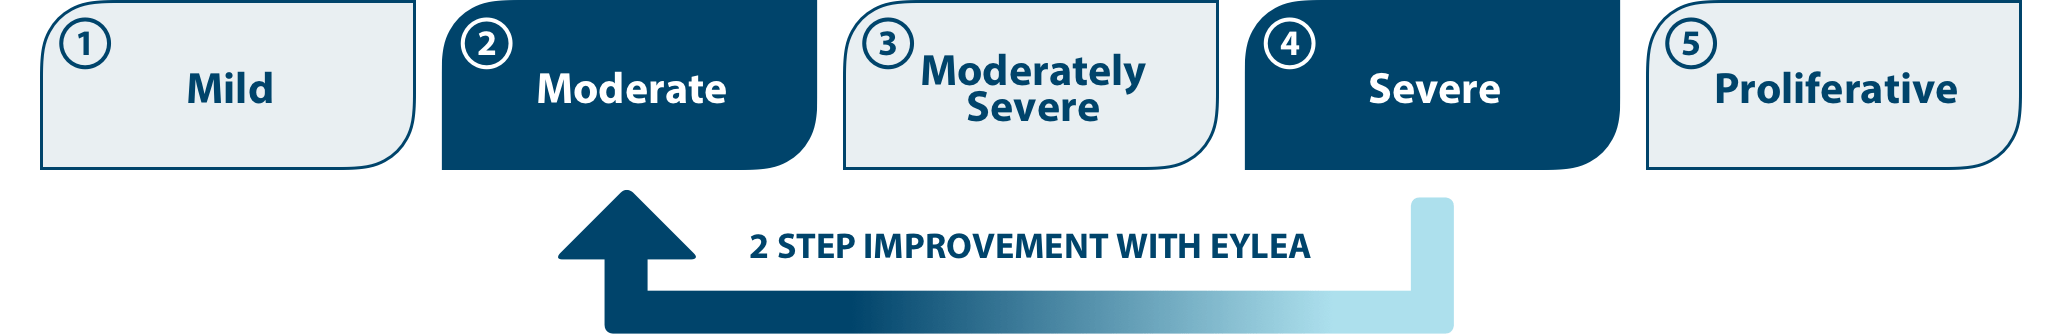 Image demonstrating a 2-step improvement on the Diabetic Retinopathy Severity Scale from Severe DR to Moderate DR.